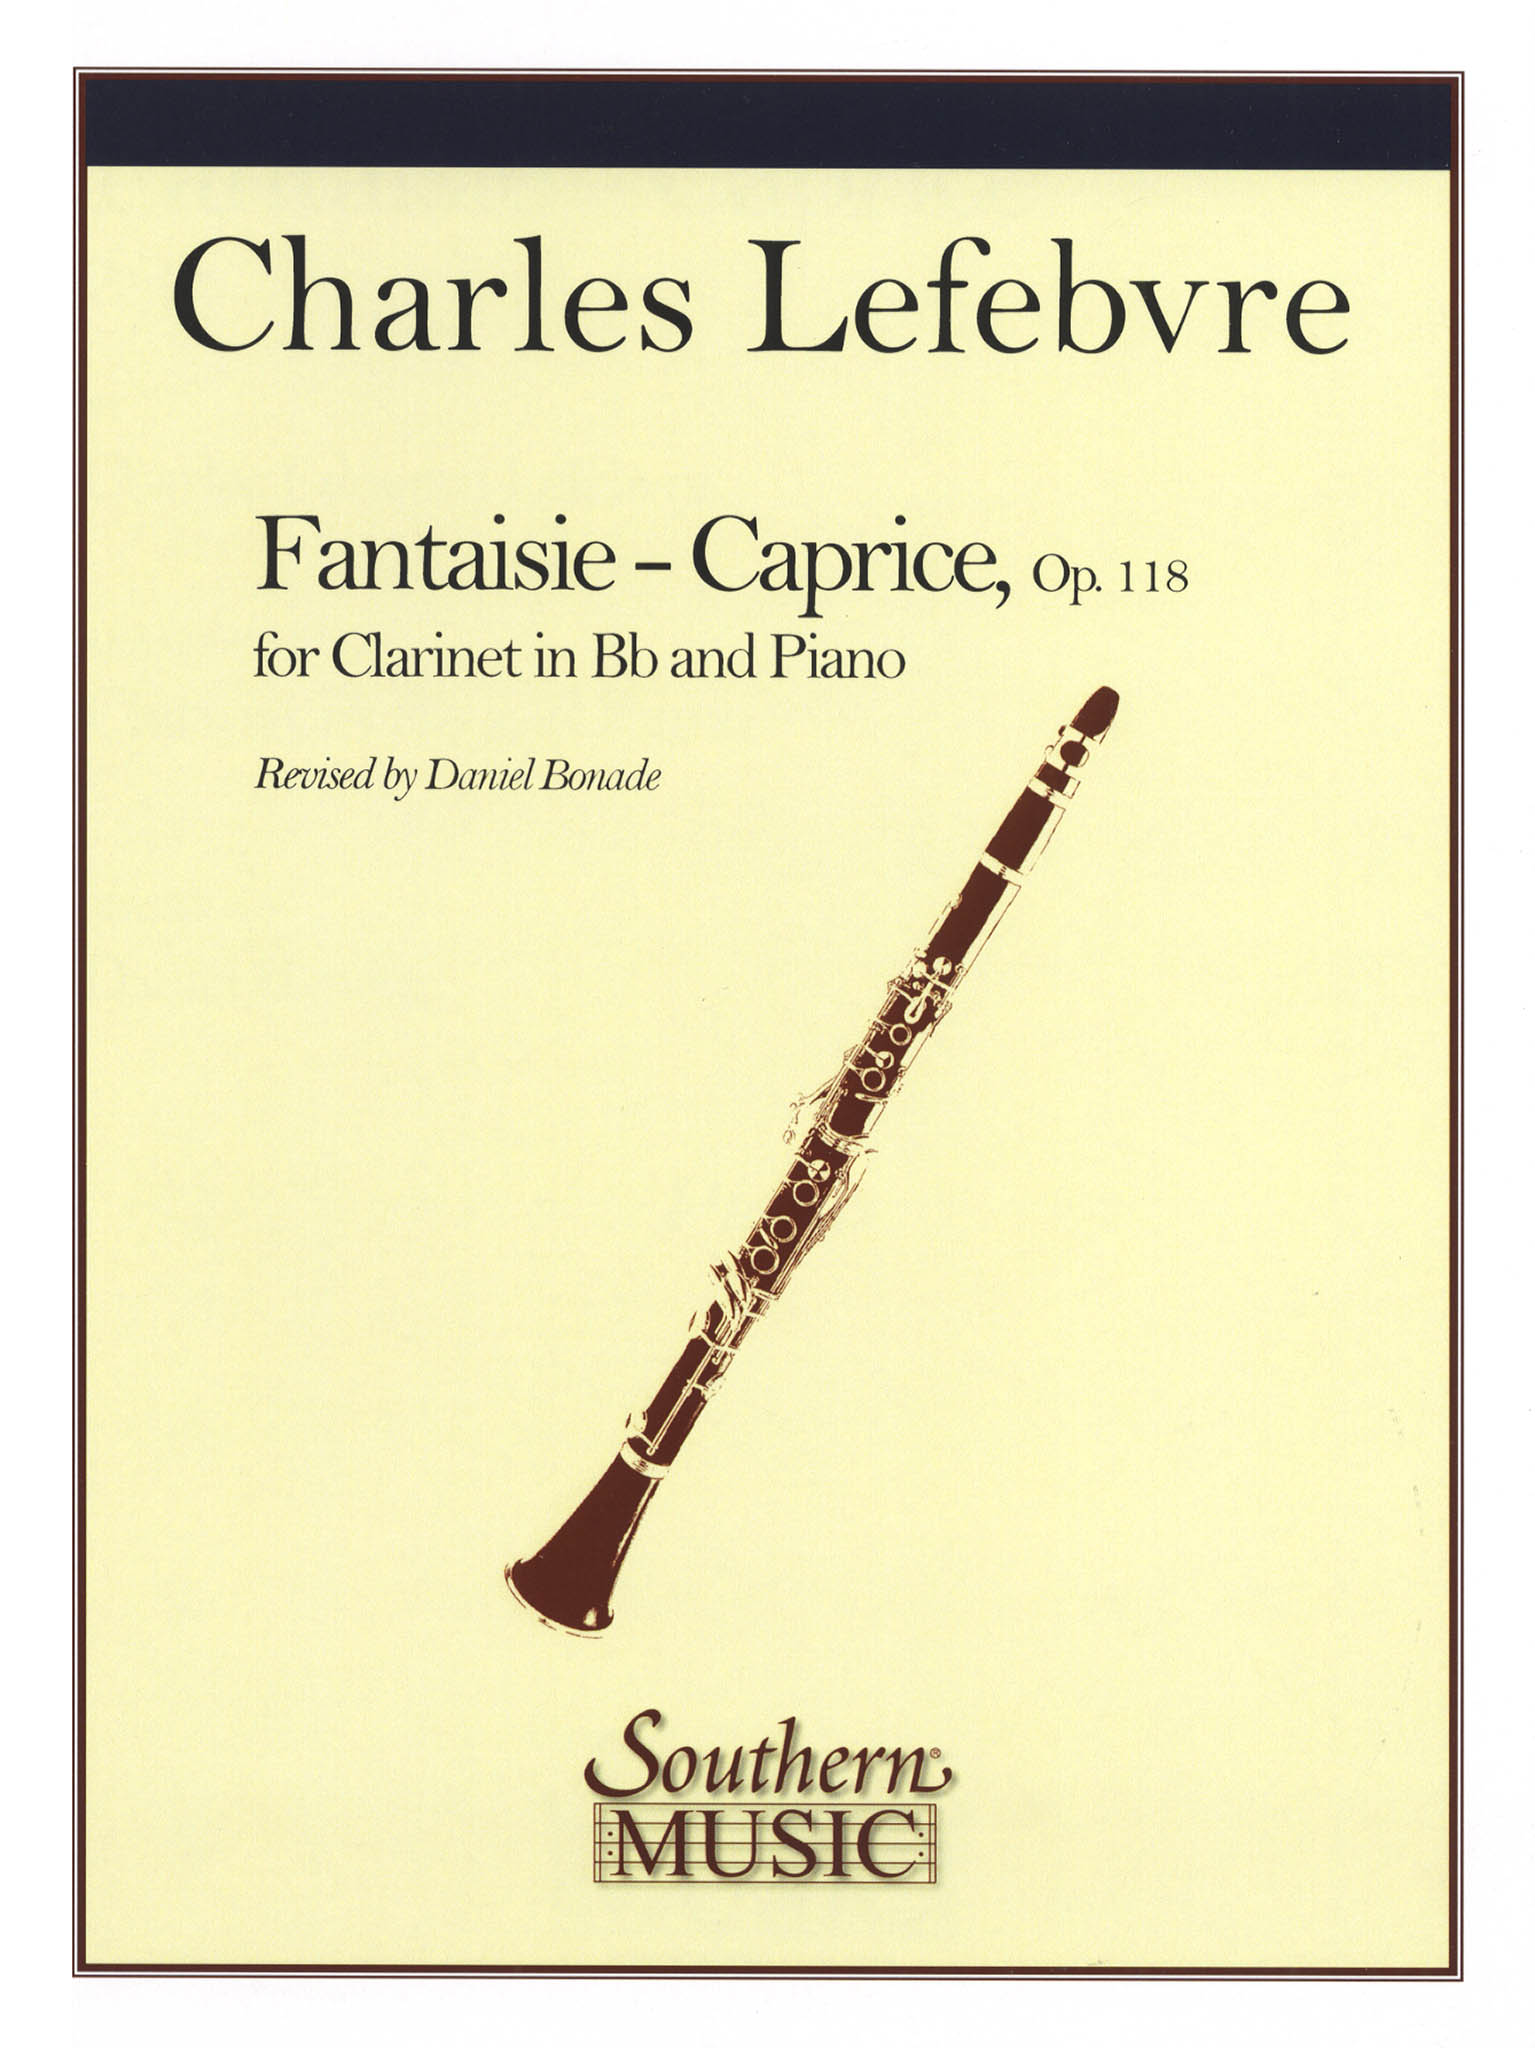 Fantaisie-caprice, Op. 118 Cover